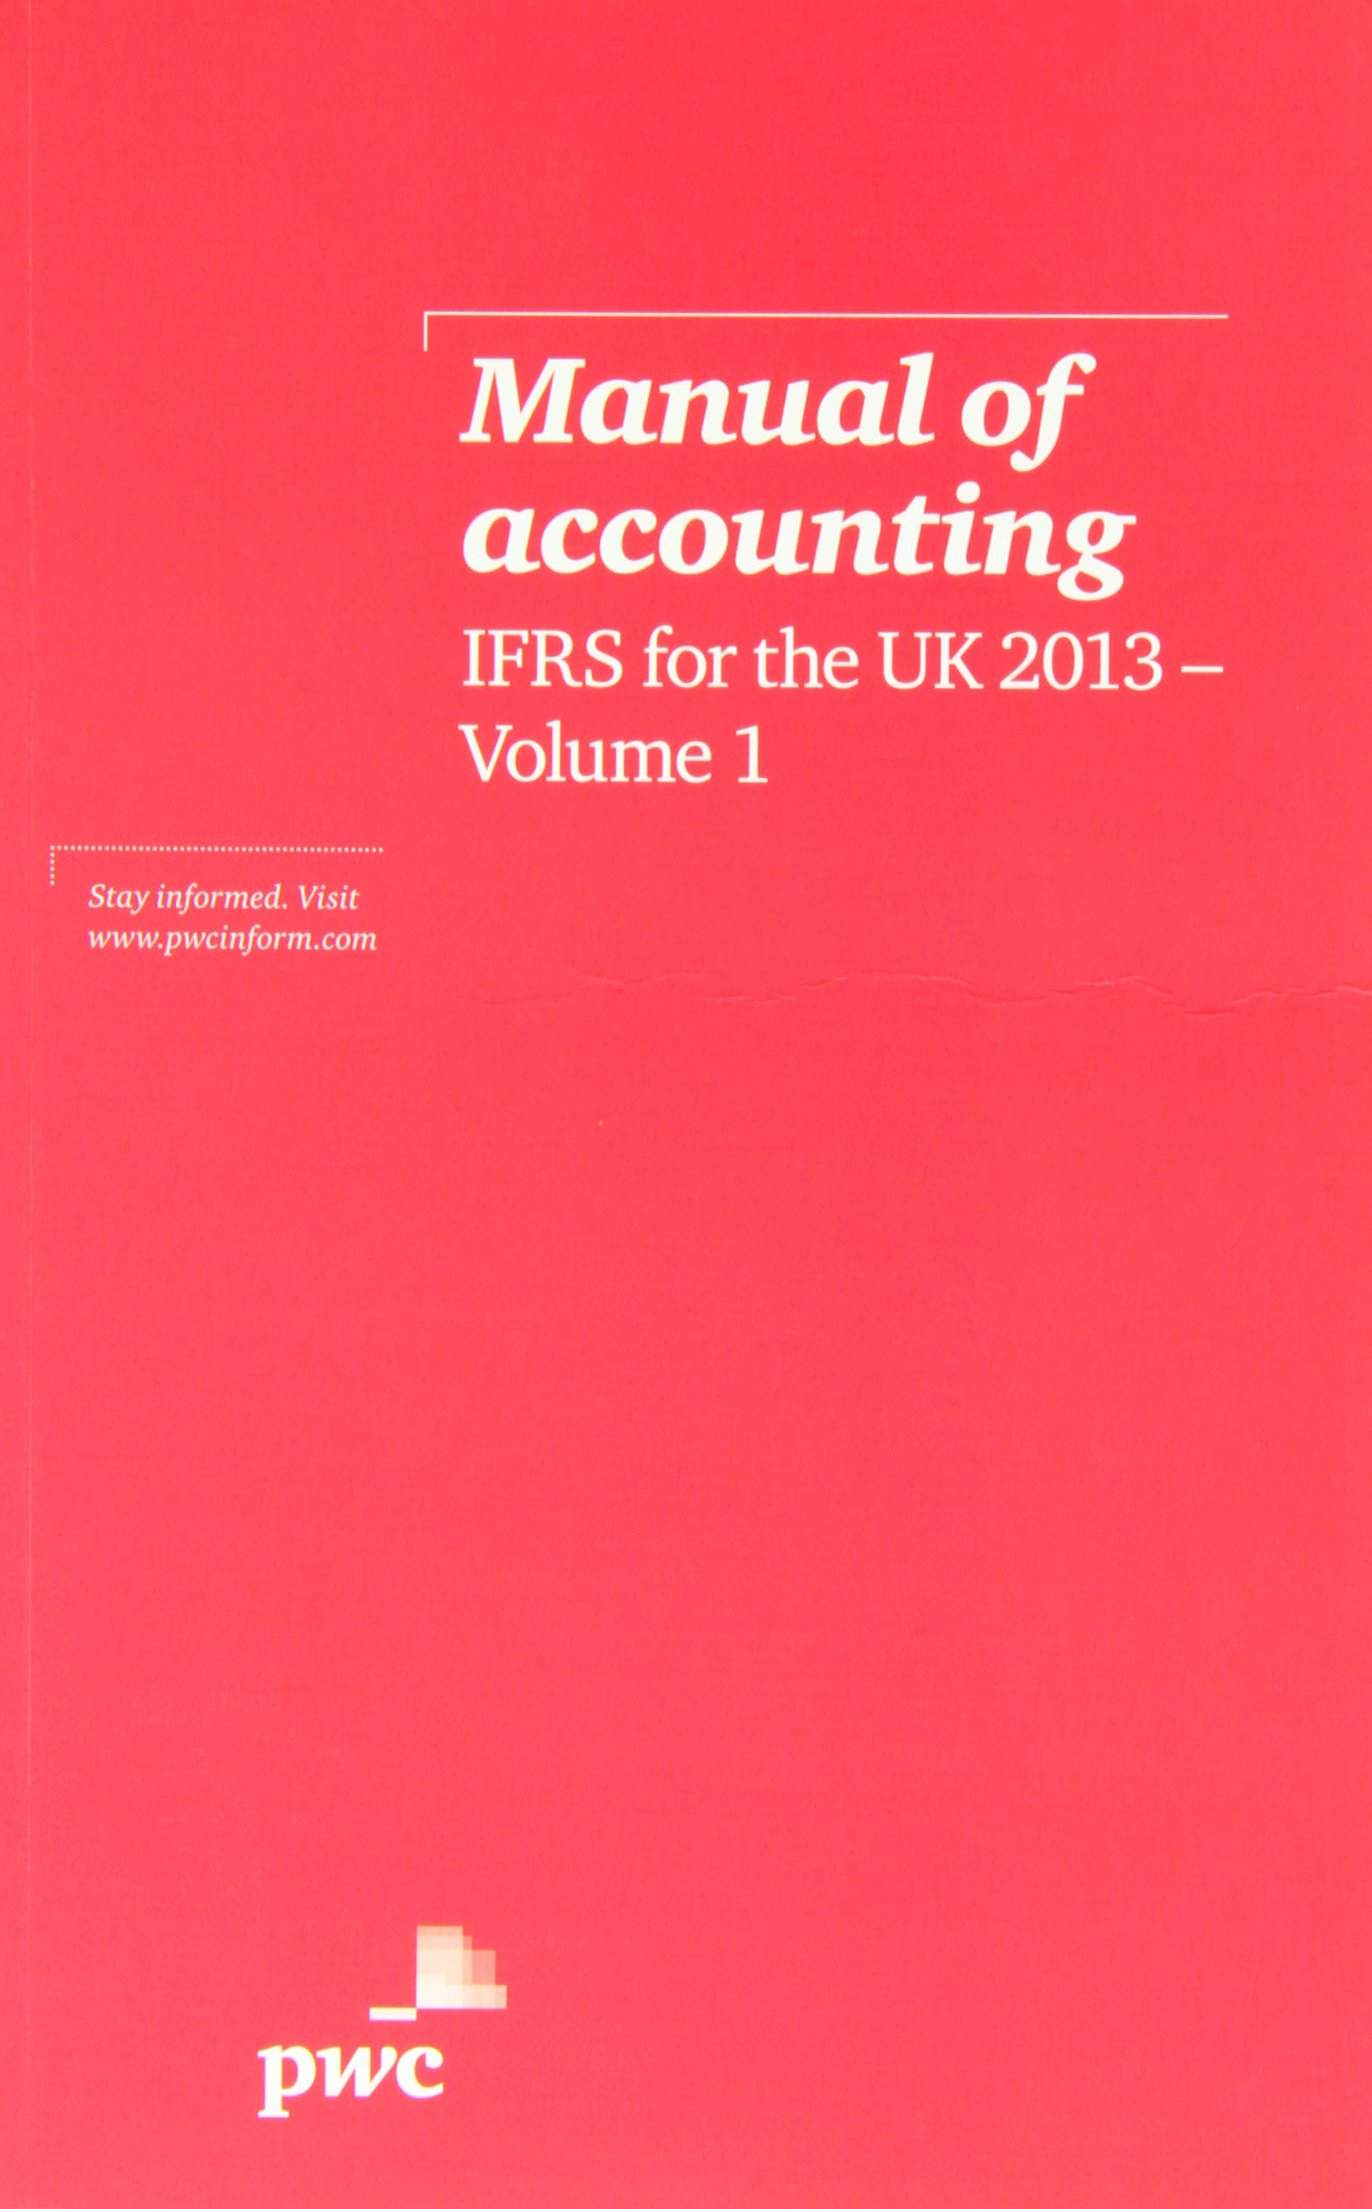 Manual of Accounting, IFRS for the UK 2013: 9781780431062: Amazon.com: Books